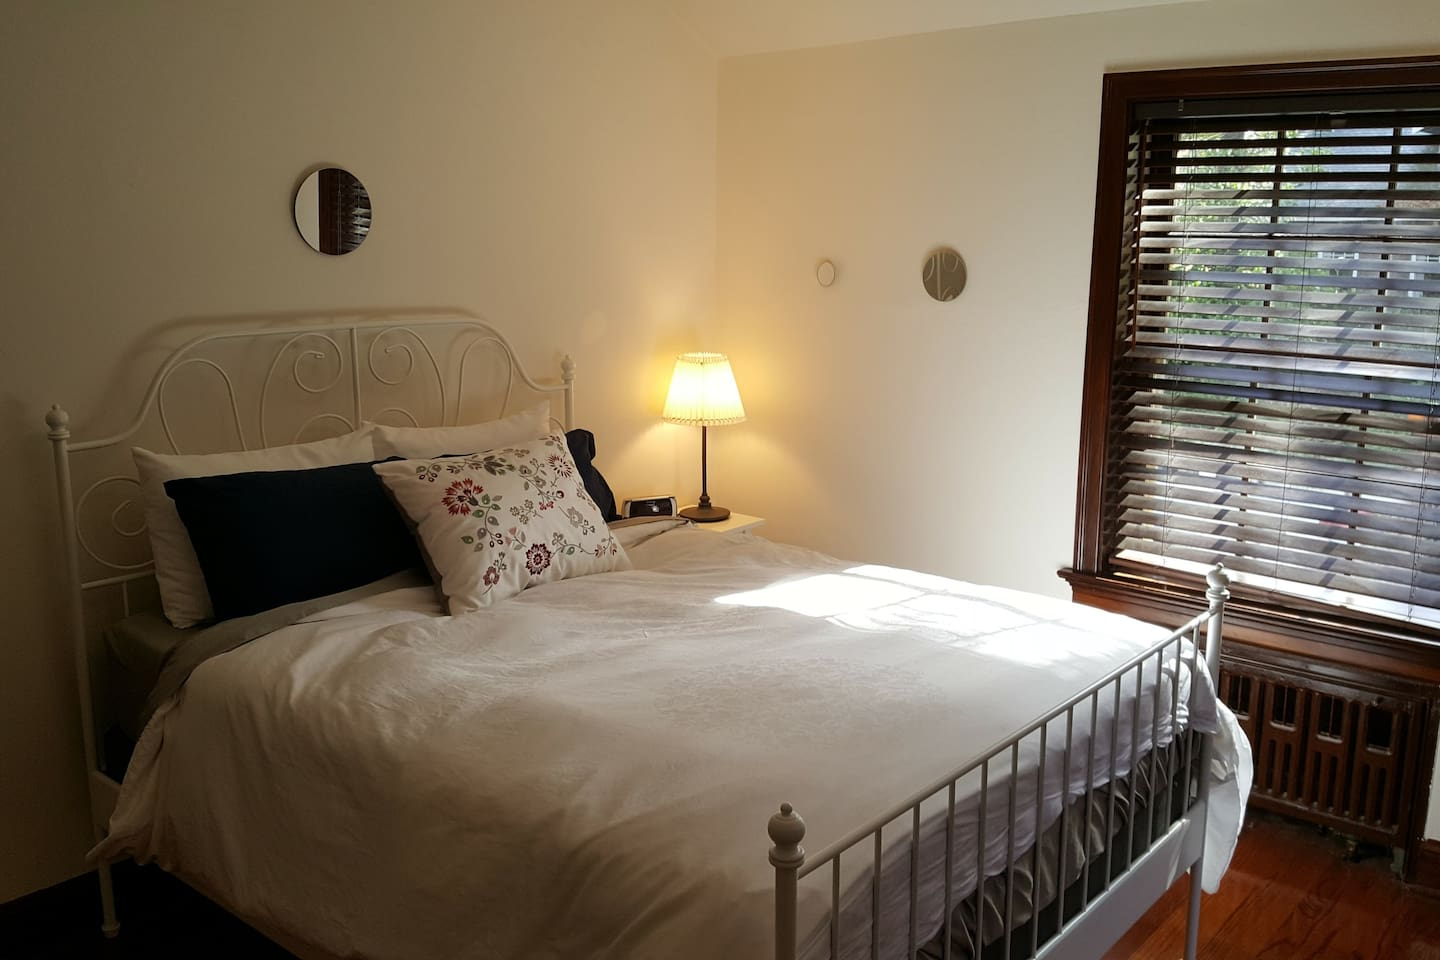 Our primary guest bed is a queen with a memory foam mattress.